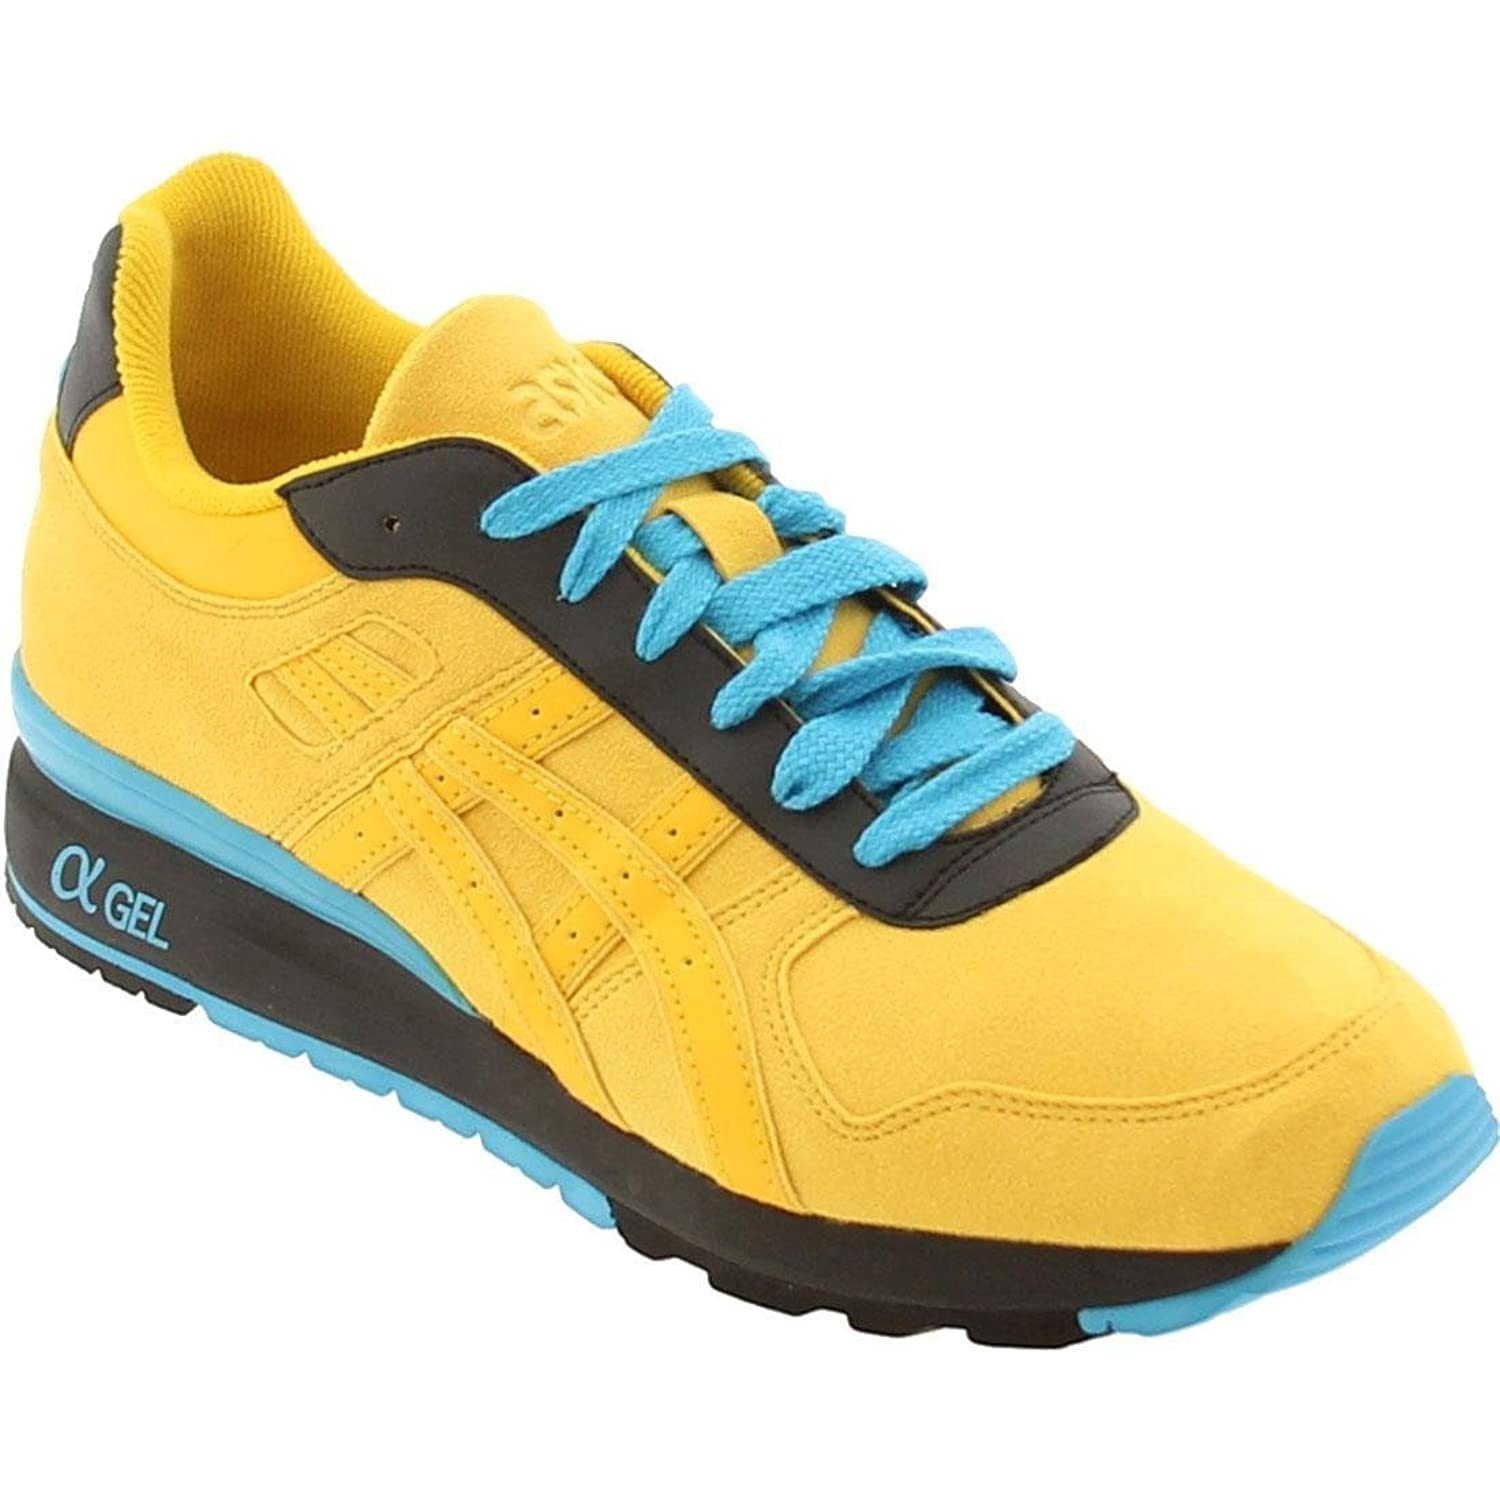 half off 7c687 e4dab Amazon.com | ASICS Tiger x Bait GT-II Rings Pack with 3M ...